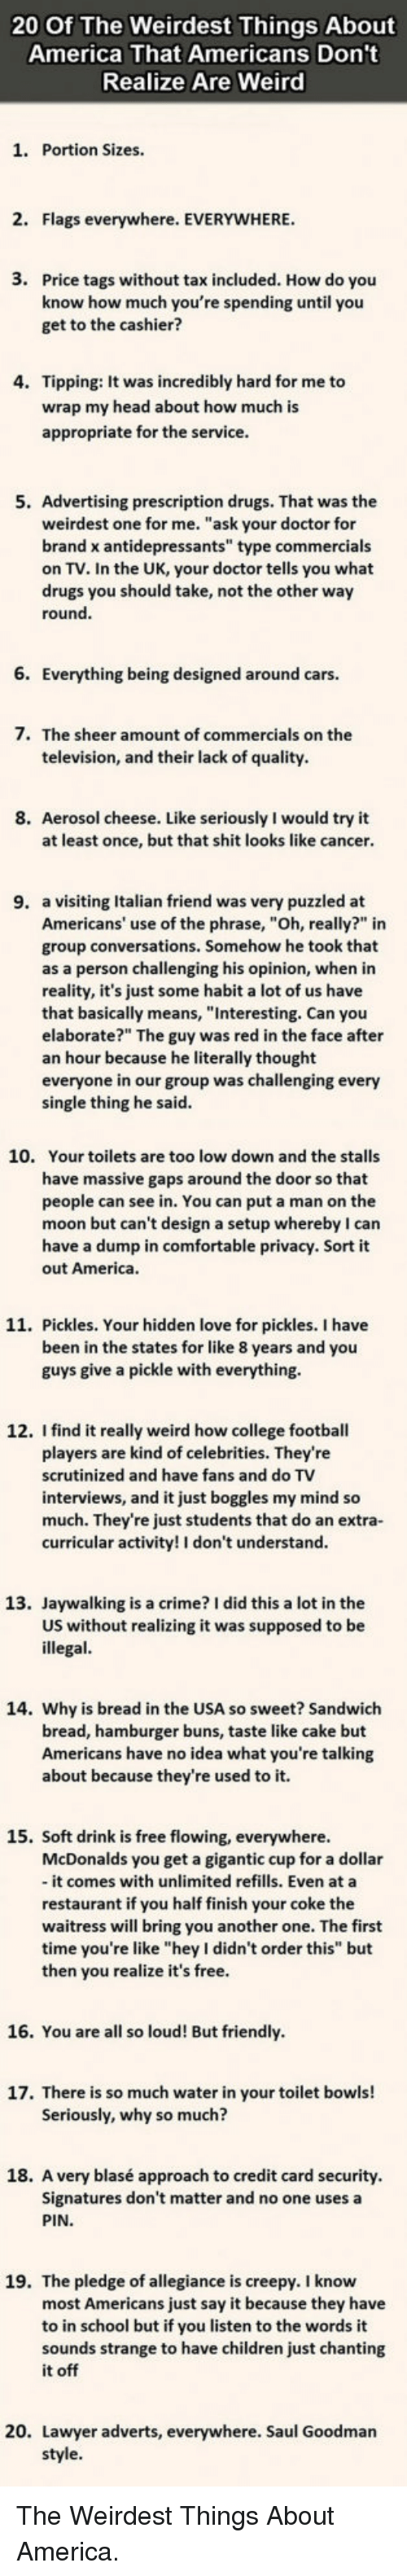 """America, Another One, and Cars: 20 Of The Weirdest Things About  America That Americans Don't  Realize Are Weird  1. Portion Sizes.  2. Flags everywhere. EVERYWHERE  3.  Price tags without tax included. How do you  know how much you're spending until you  get to the cashier?  4. Tipping: It was incredibly hard for me to  wrap my head about how much is  appropriate for the service  5. Advertising prescription drugs. That was the  weirdest one for me. """"ask your doctor for  brand x antidepressants"""" type commercials  on TV. In the UK, your doctor tells you what  drugs you should take, not the other way  round  6. Everything being designed around cars.  7.  The sheer amount of commercials on the  television, and their lack of quality  8. Aerosol cheese. Like seriously I would try it  at least once, but that shit looks like cancer  9. a visiting Italian friend was very puzzled at  Americans' use of the phrase, """"Oh, really?"""" in  group conversations. Somehow he took that  as a person challenging his opinion, when in  reality, it's just some habit a lot of us have  that basically means, """"Interesting. Can you  elaborate?"""" The guy was red in the face after  an hour because he literally thought  everyone in our group was challenging every  single thing he said  10.  Your toilets are too low down and the stalls  have massive gaps around the door so that  people can see in. You can put a man on the  moon but can't design a setup whereby I can  have a dump in comfortable privacy. Sort it  out America  11. Pickles. Your hidden love for pickles. I have  been in the states for like 8 years and you  guys give a pickle with everything.  12. I find it really weird how college football  players are kind of celebrities. They're  scrutinized and have fans and do TV  interviews, and it just boggles my mind so  much. They're just students that do an extra-  curricular activity! I don't understand  13. Jaywalking is a crime? I did this a lot in the  US without realizing it was supposed to be """